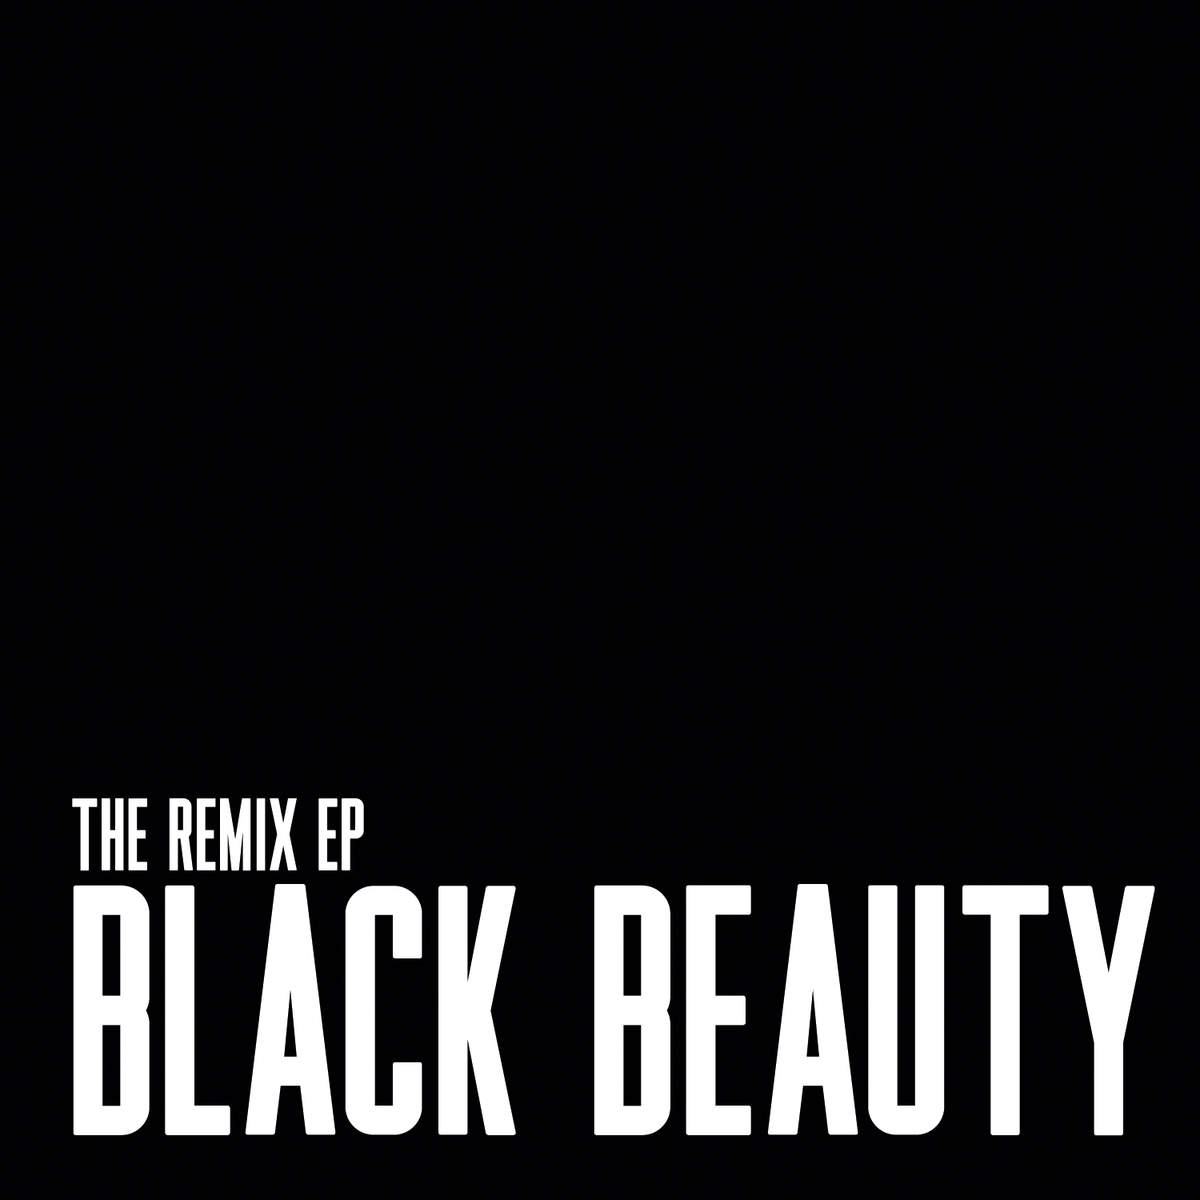 Black Beauty (song)